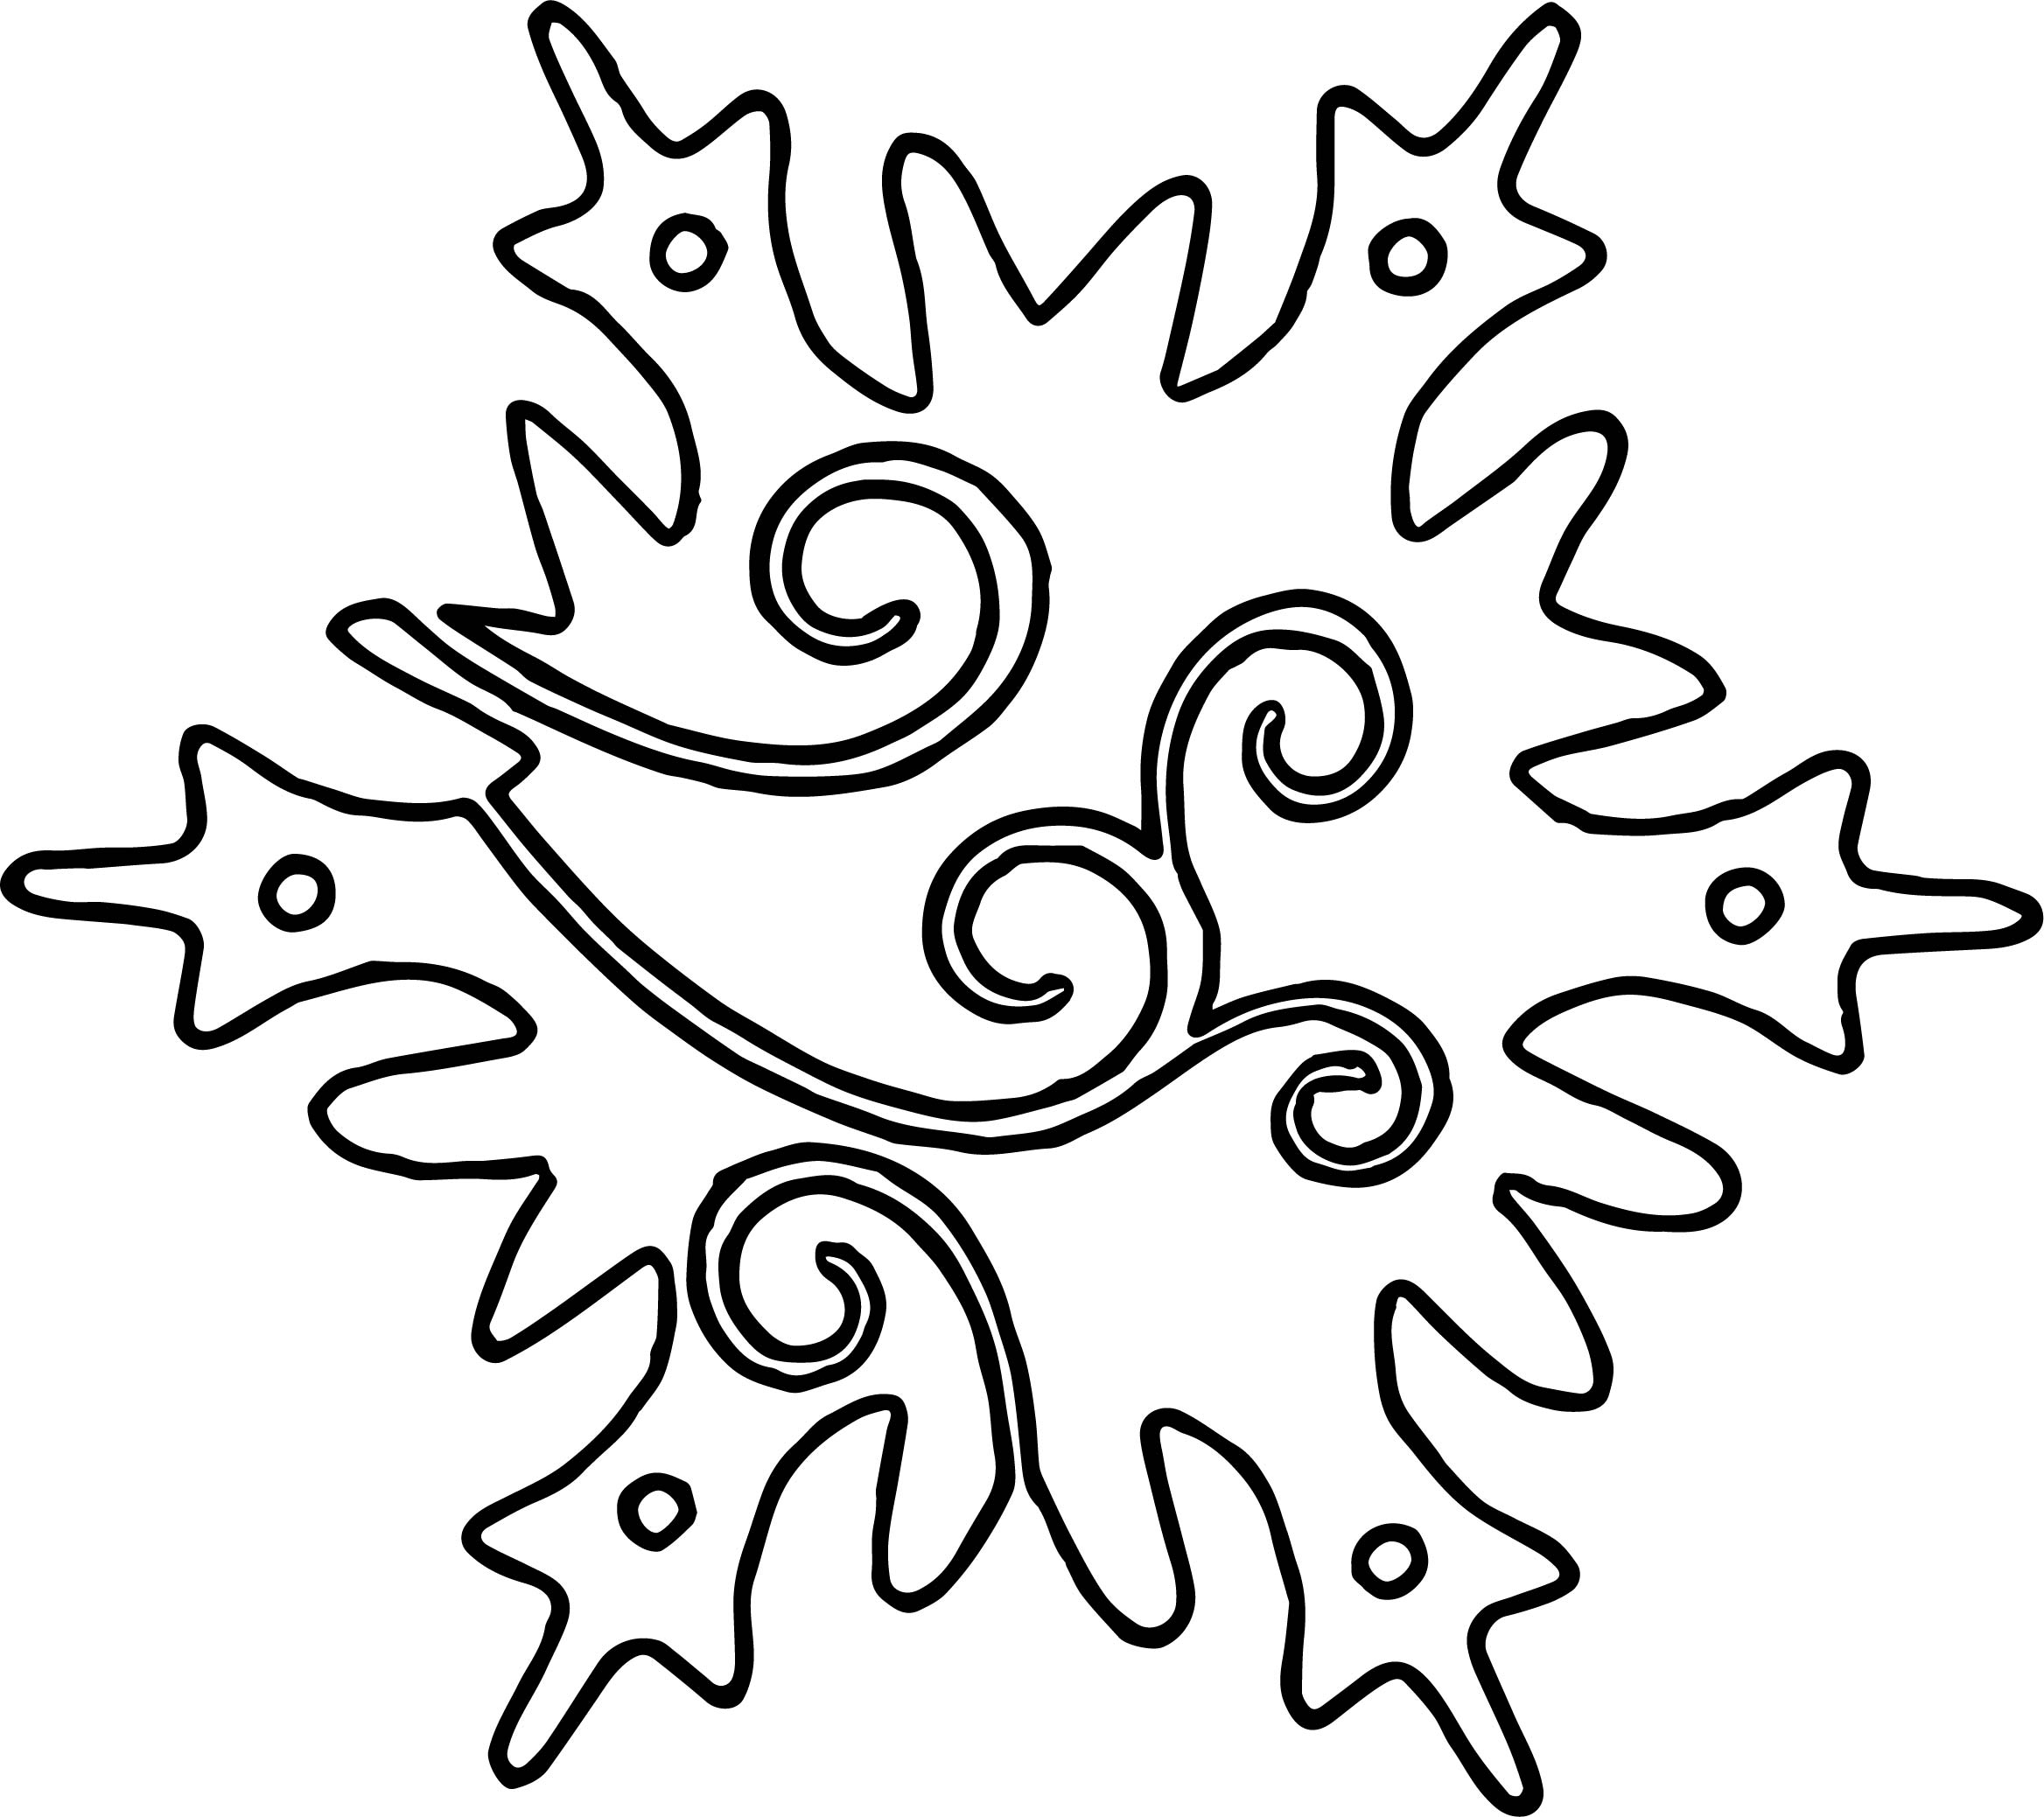 Orniment Snowflake Coloring Page | Wecoloringpage